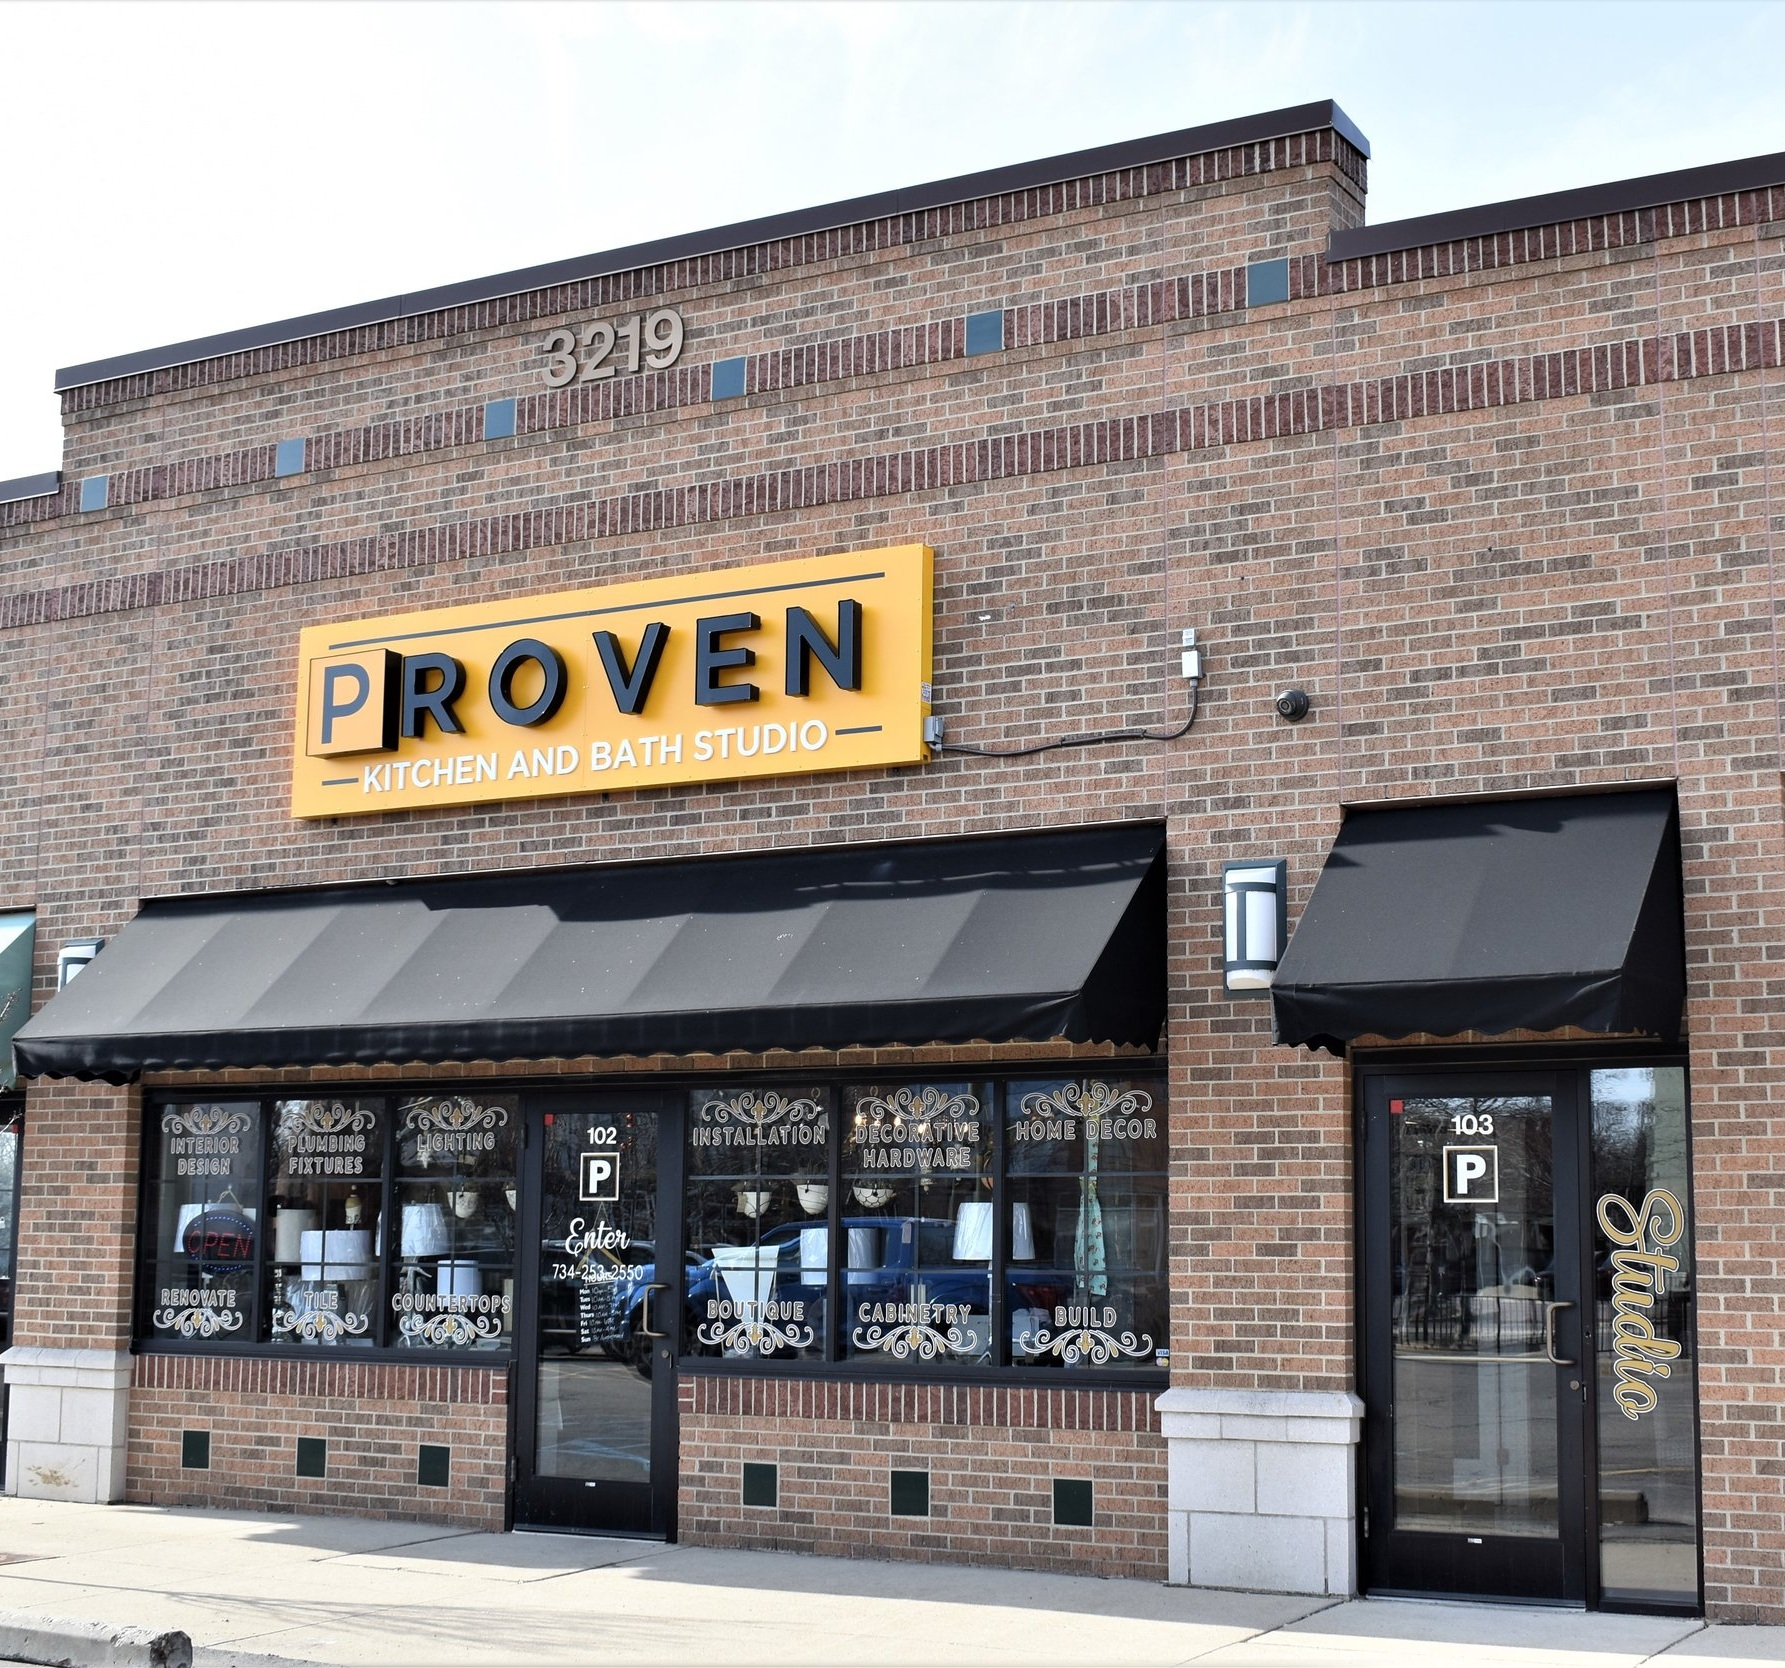 PROVEN KITCHEN & BATH STUDIO - 3219 Broad Street , Dexter MI 48130